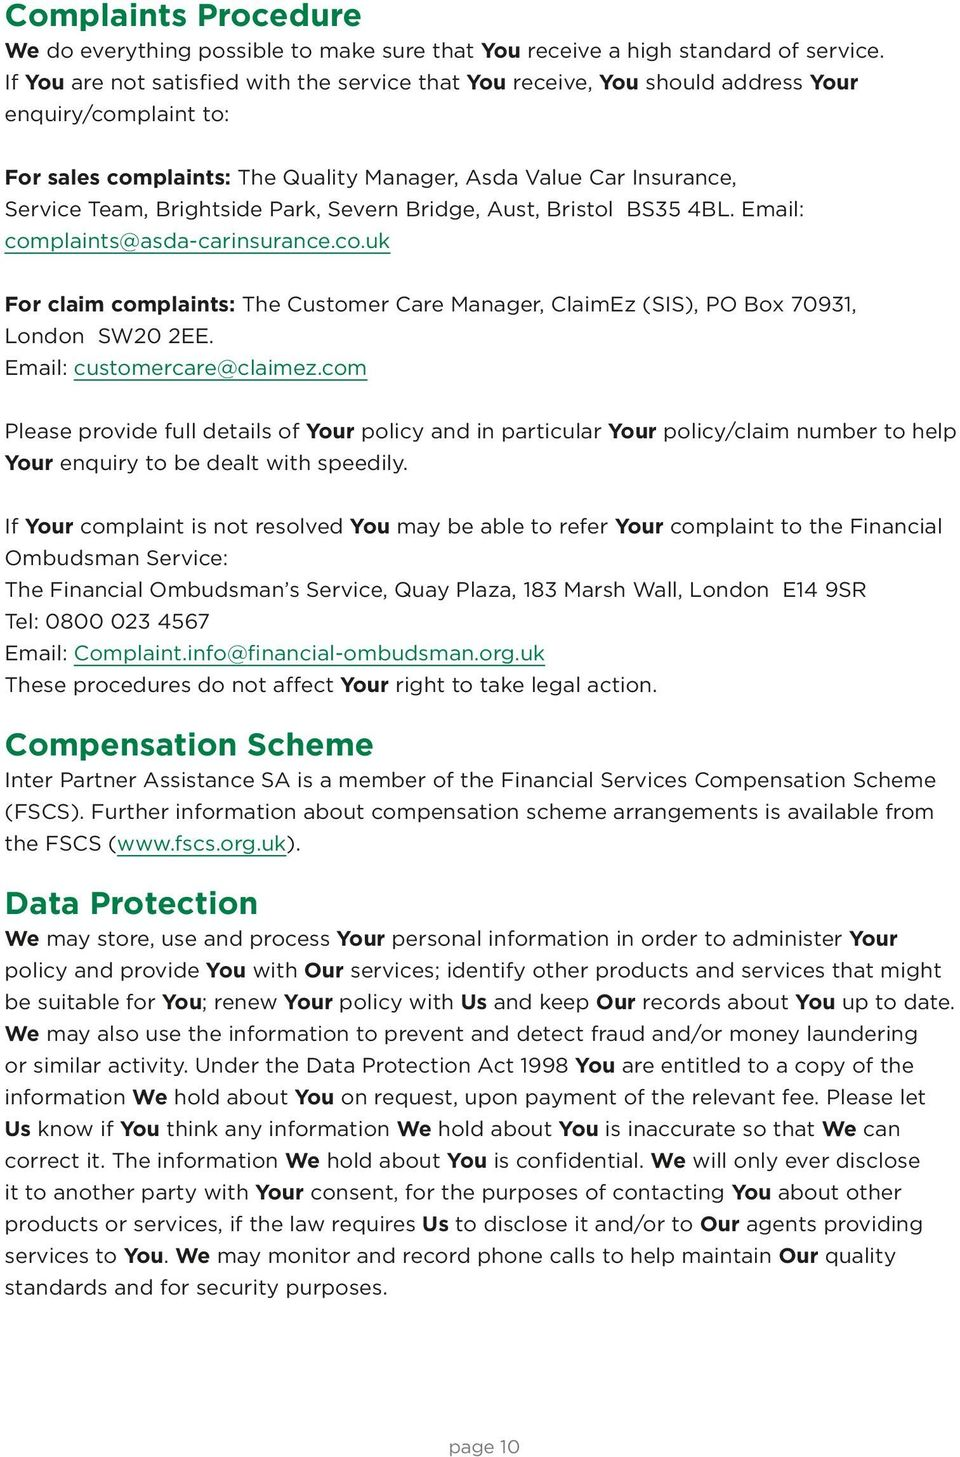 Park, Severn Bridge, Aust, Bristol BS35 4BL. Email: complaints@asda-carinsurance.co.uk For claim complaints: The Customer Care Manager, ClaimEz (SIS), PO Box 70931, London SW20 2EE.